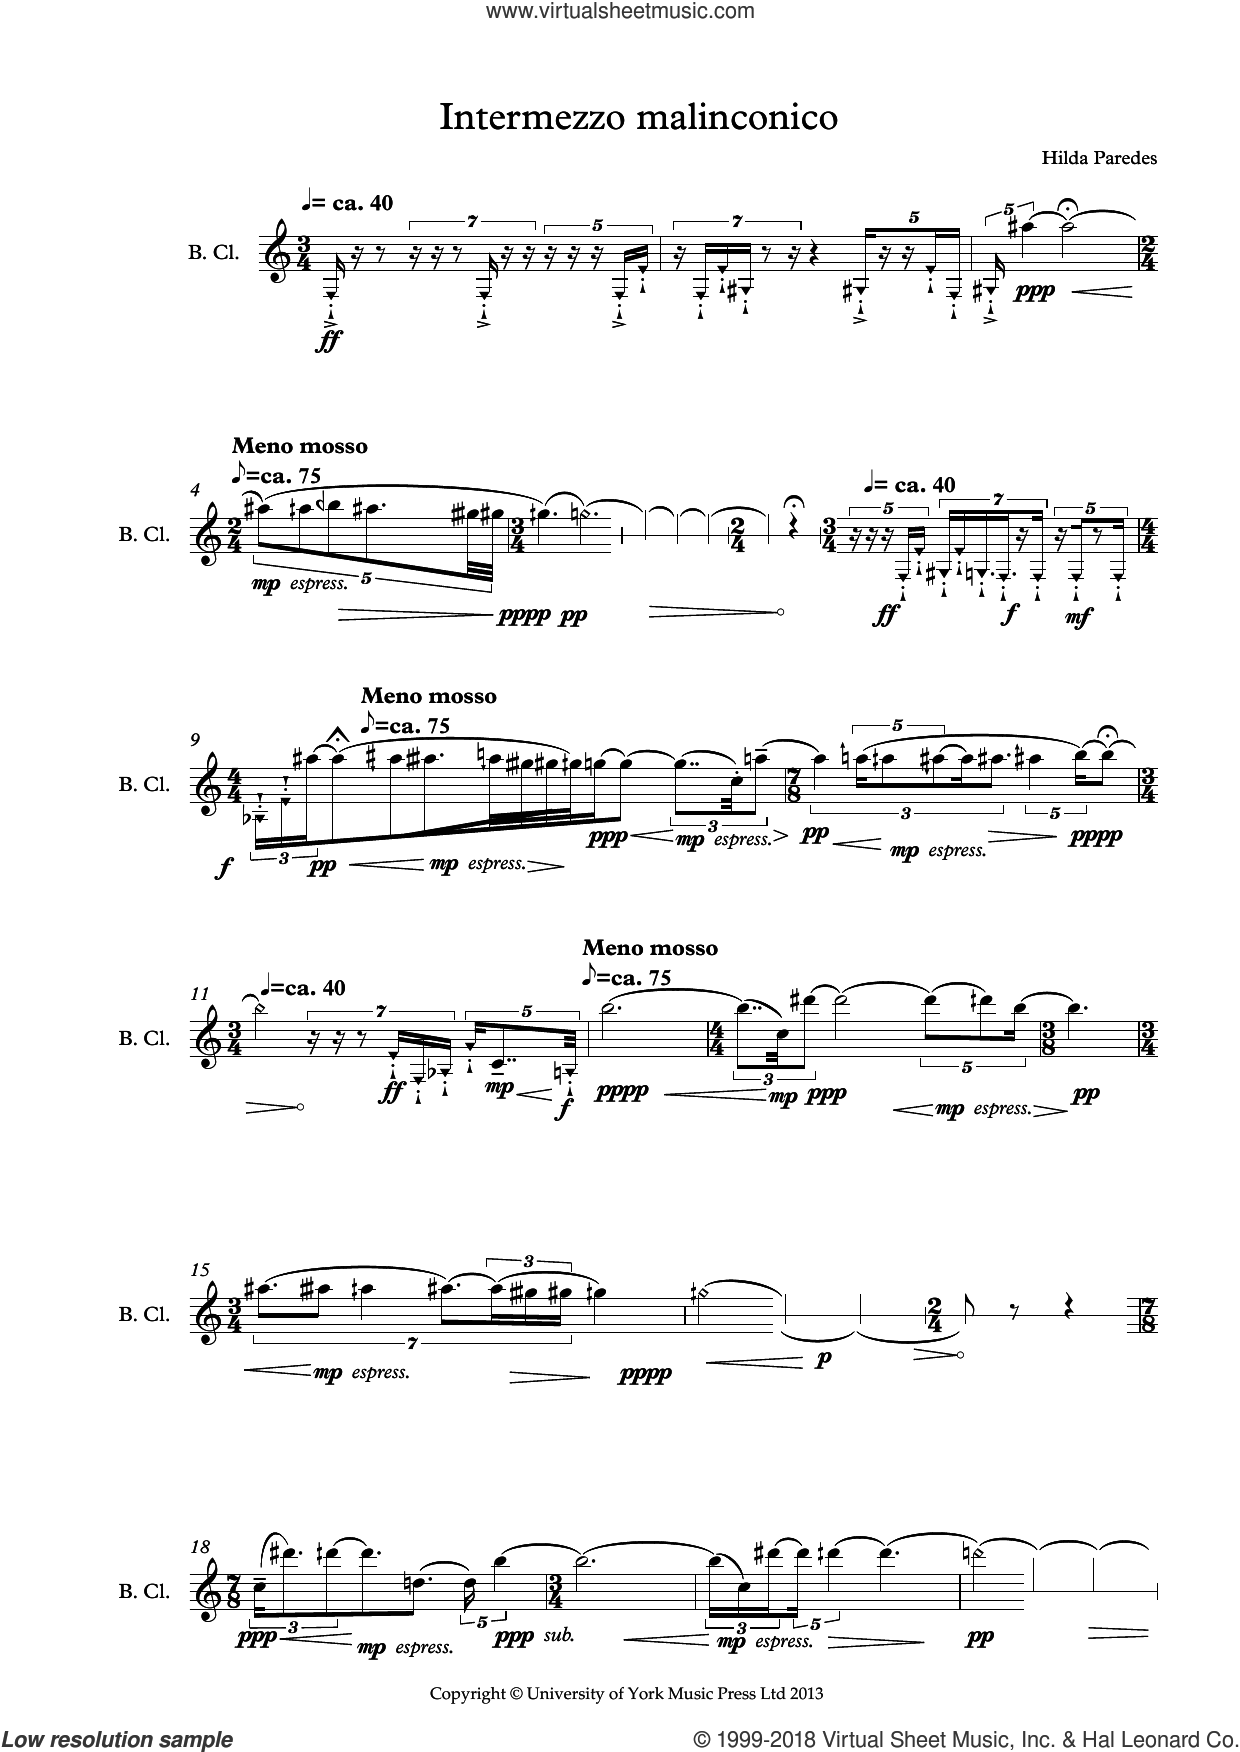 Intermezzo Malinconico sheet music for bass clarinet solo by Hilda Paredes, classical score, intermediate skill level